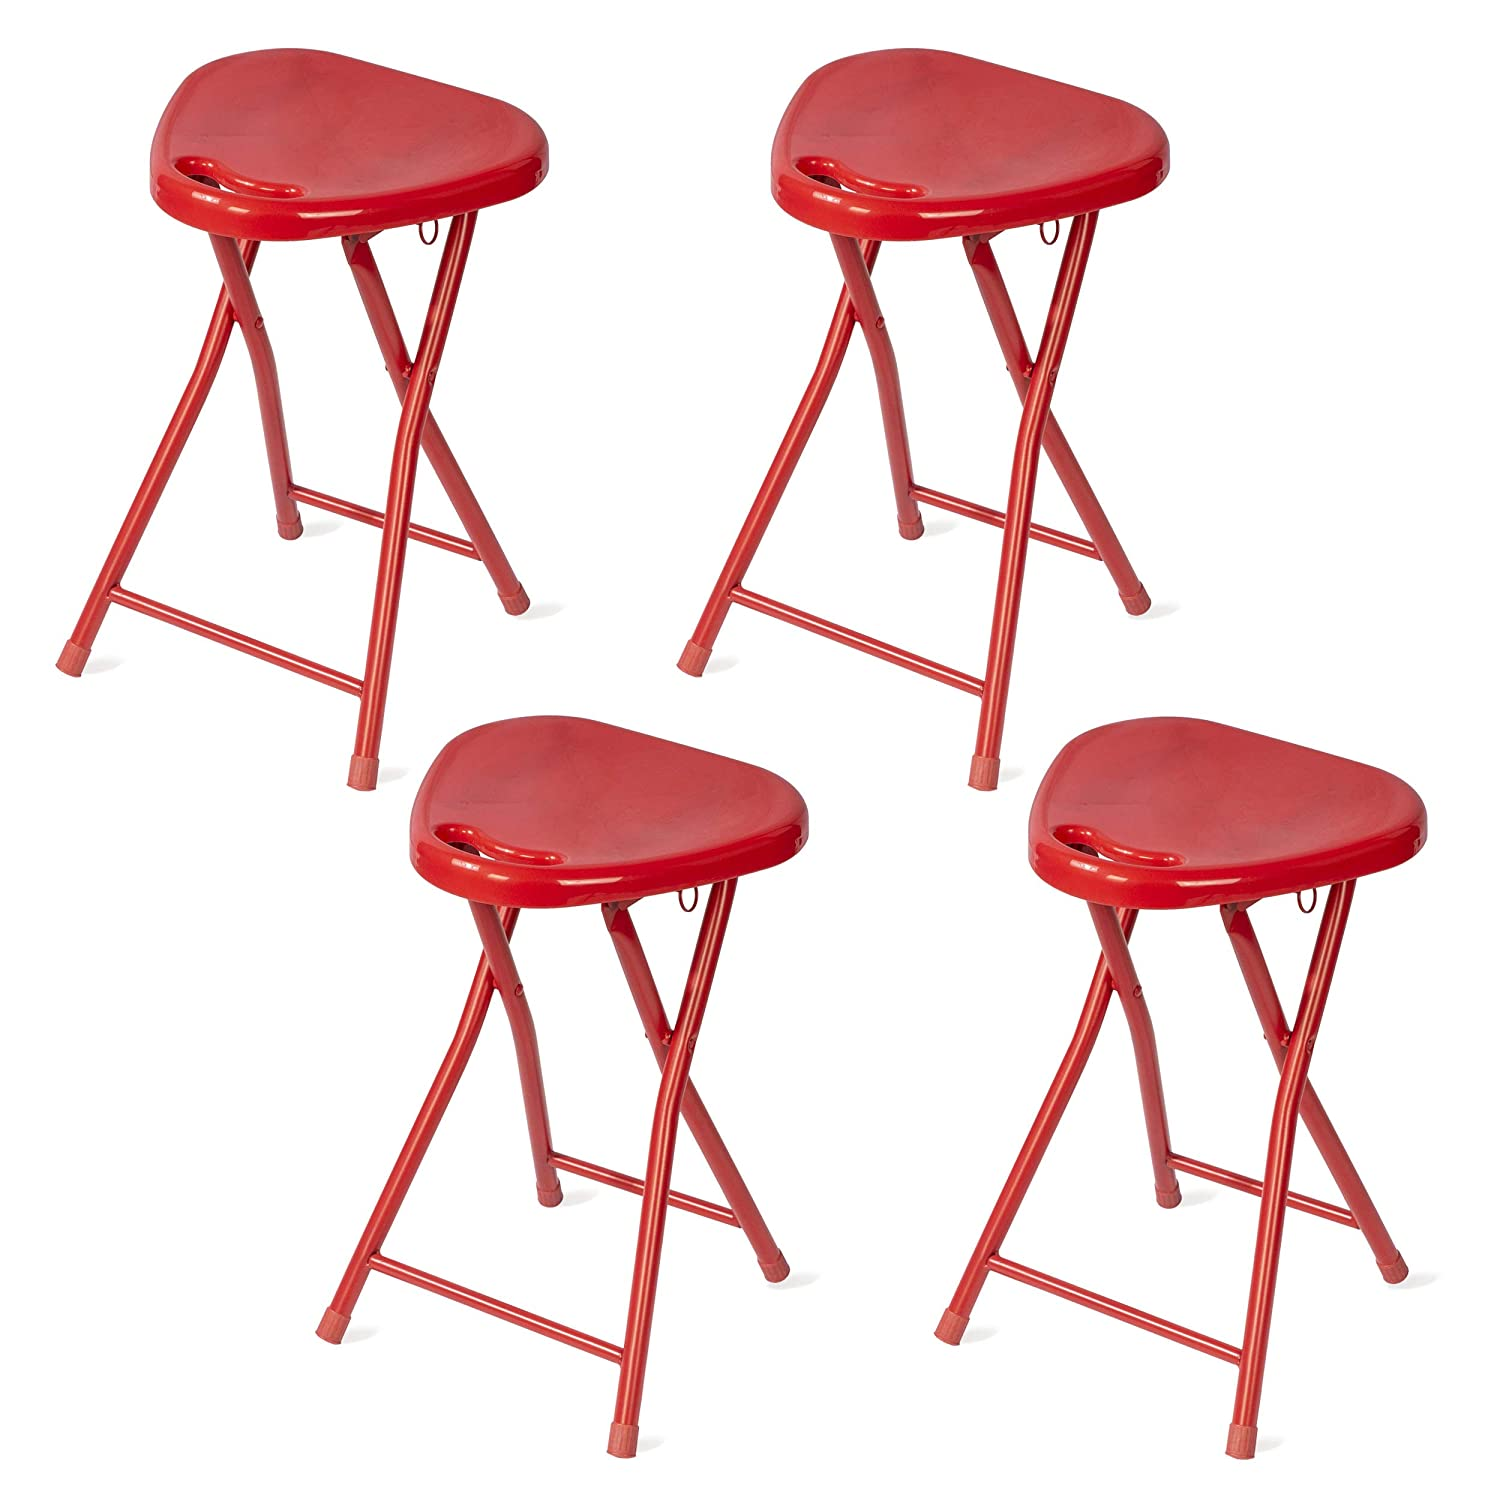 Awesome Dar Living Folding Stool With Handle Red 4 Pack Andrewgaddart Wooden Chair Designs For Living Room Andrewgaddartcom